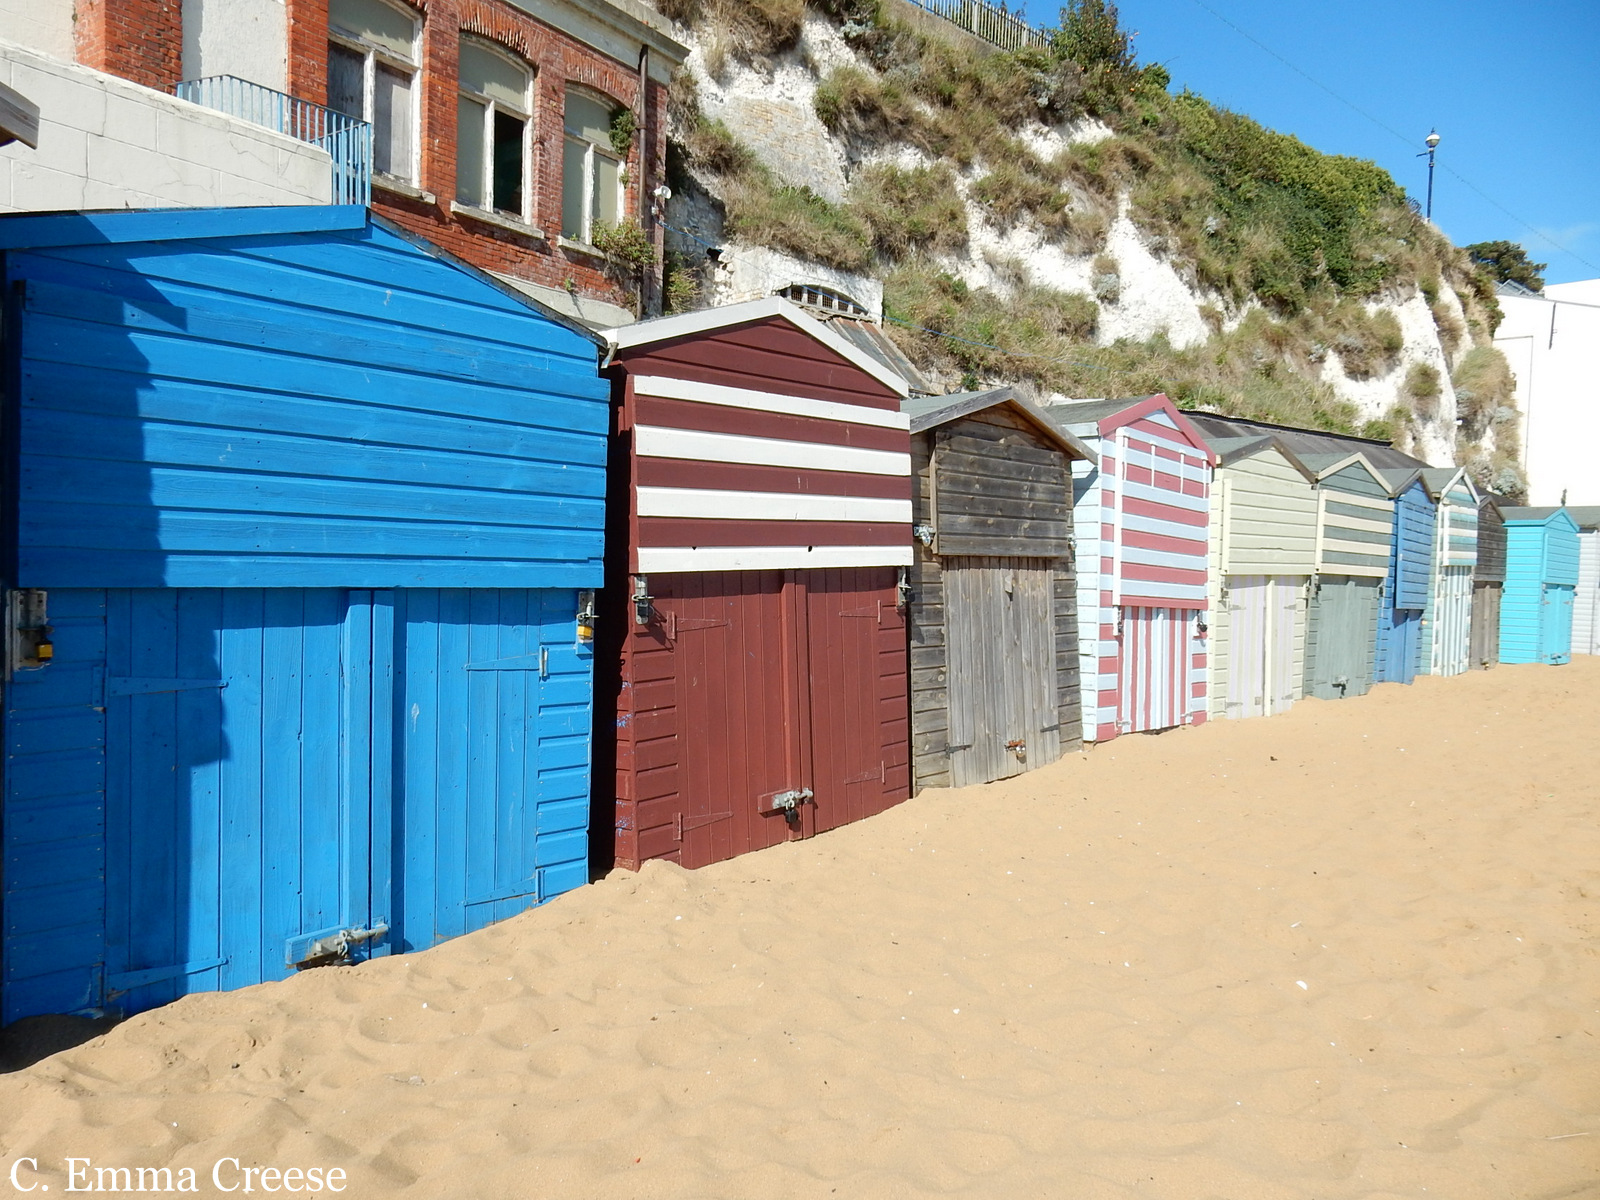 Broadstairs beach 10 London day trips - last-minute and no car required